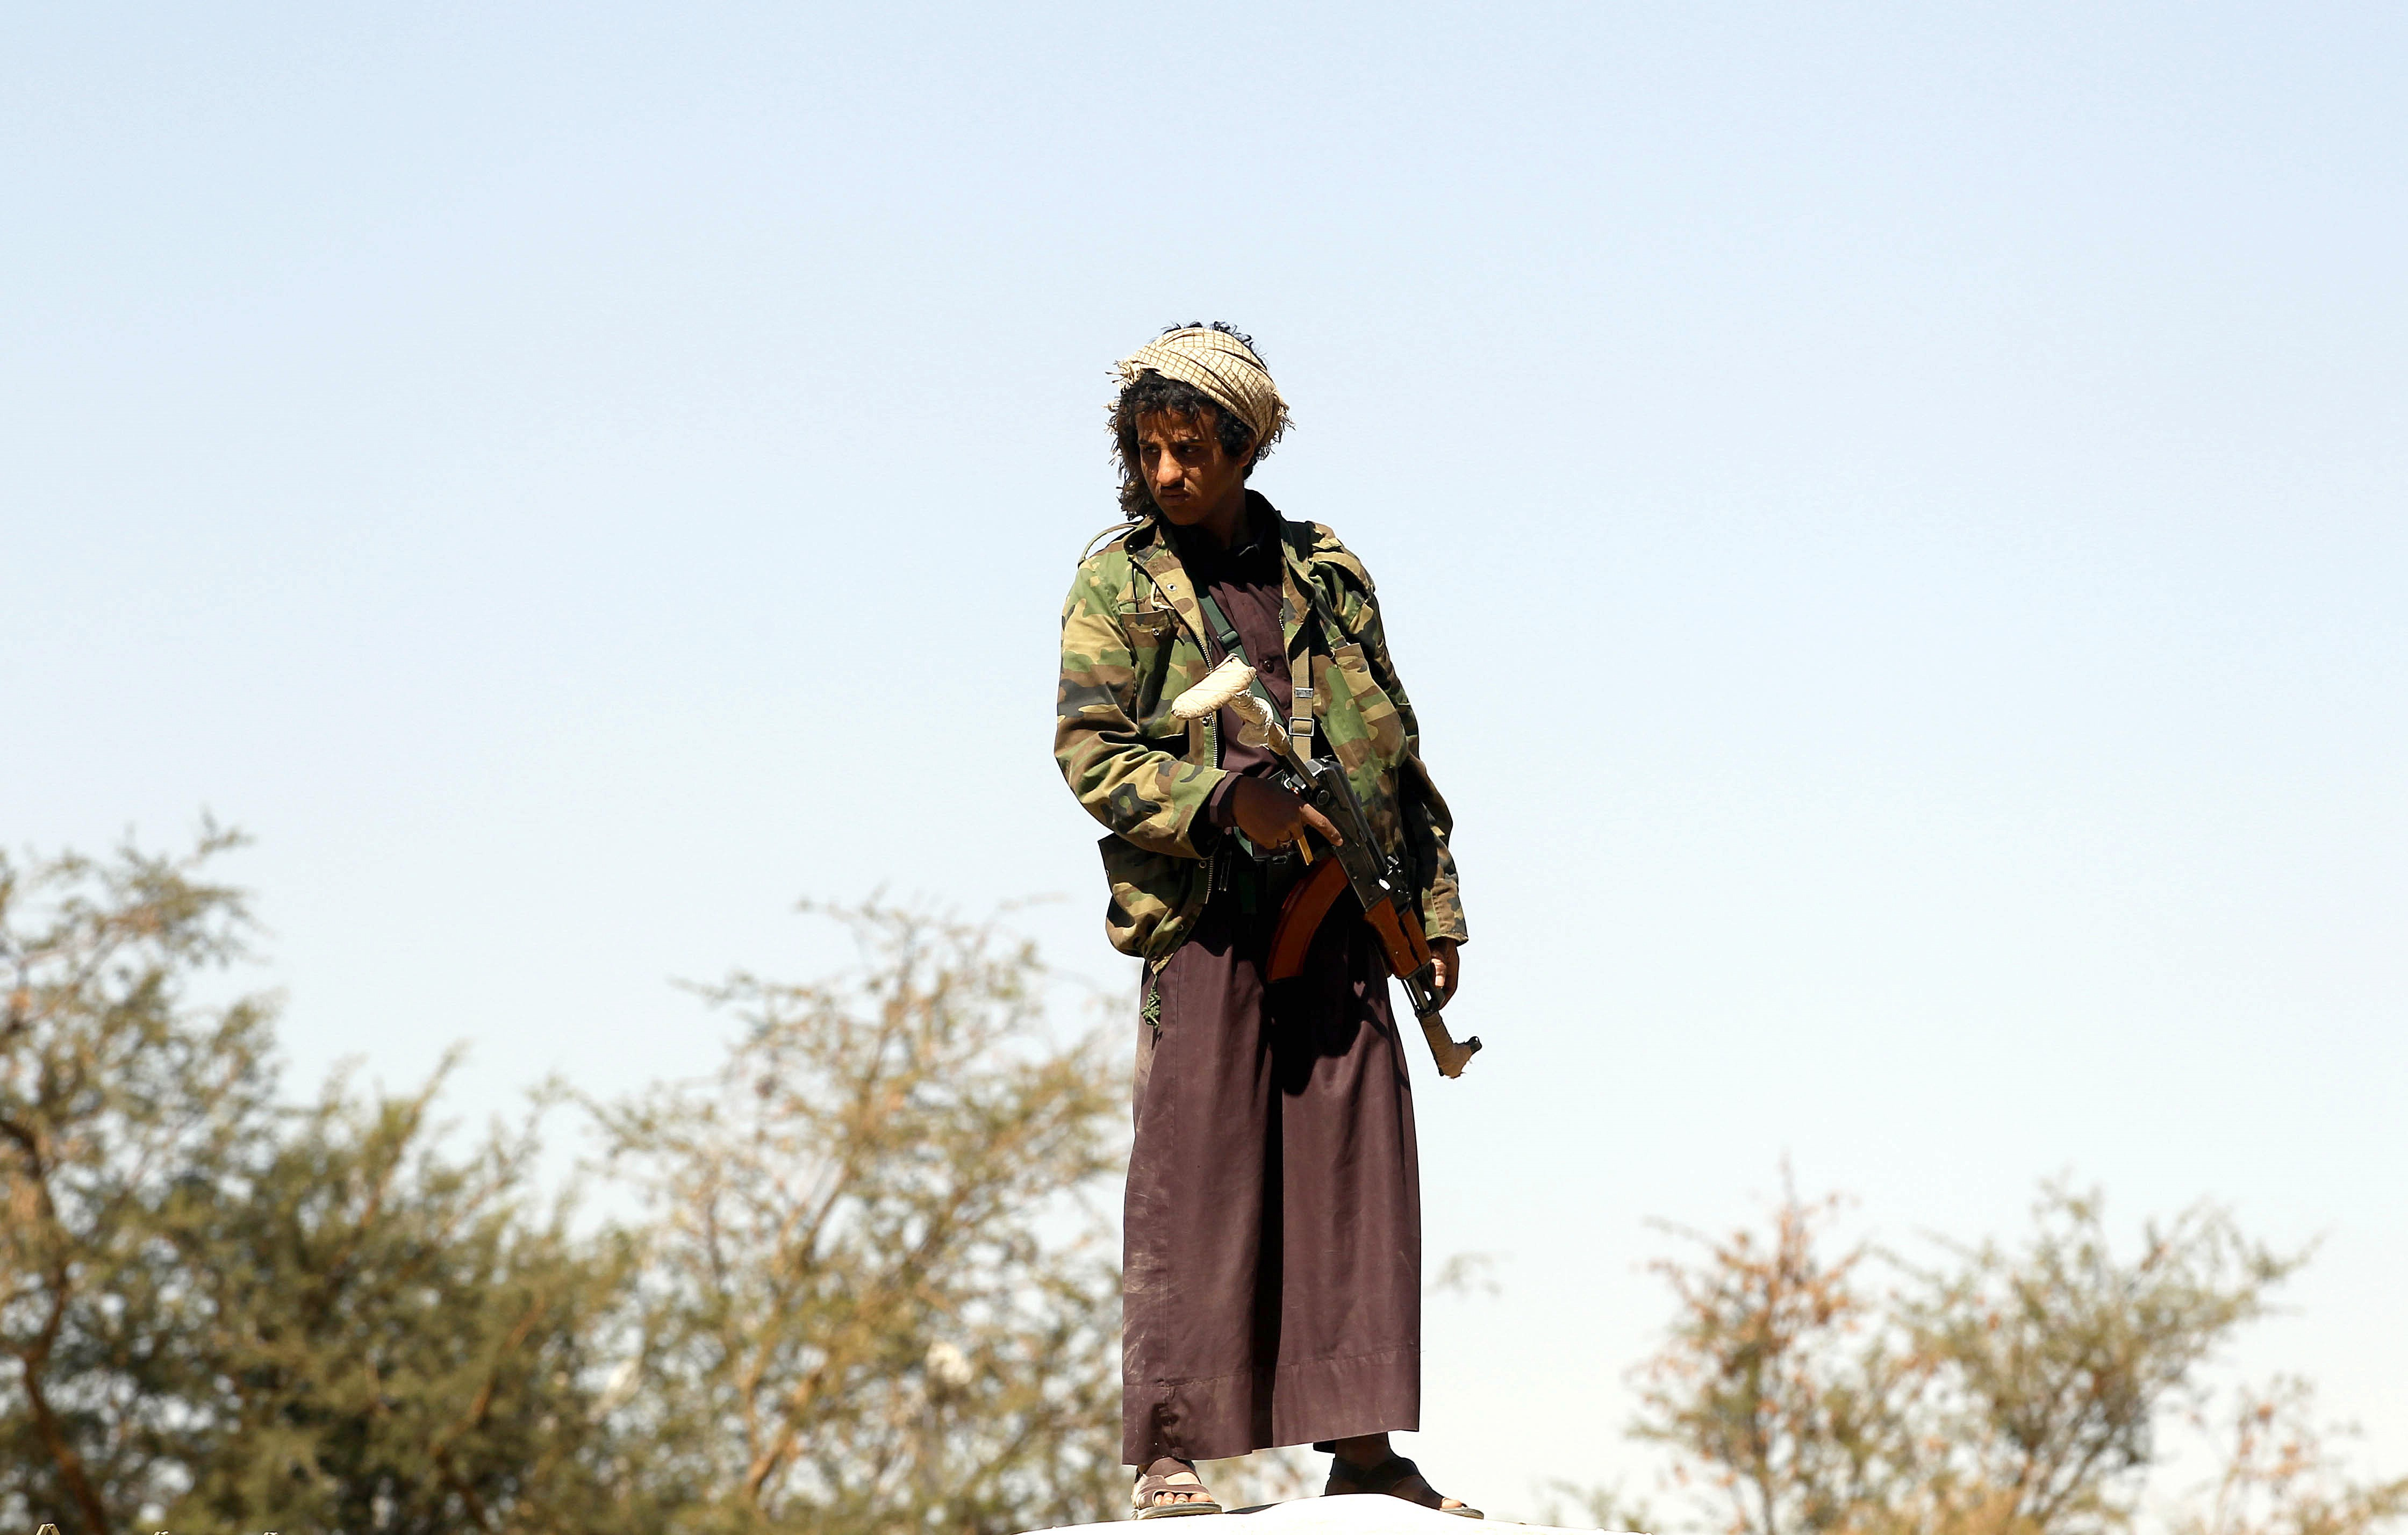 A member of Houthi Ansarullah movement stands guard during the funeral ceremony of Latif al Khahum, a member of Houthi Ansarullah Movement, at al-Jaraf neighbourhood in Sanaa, Yemen on Feb.18, 2016